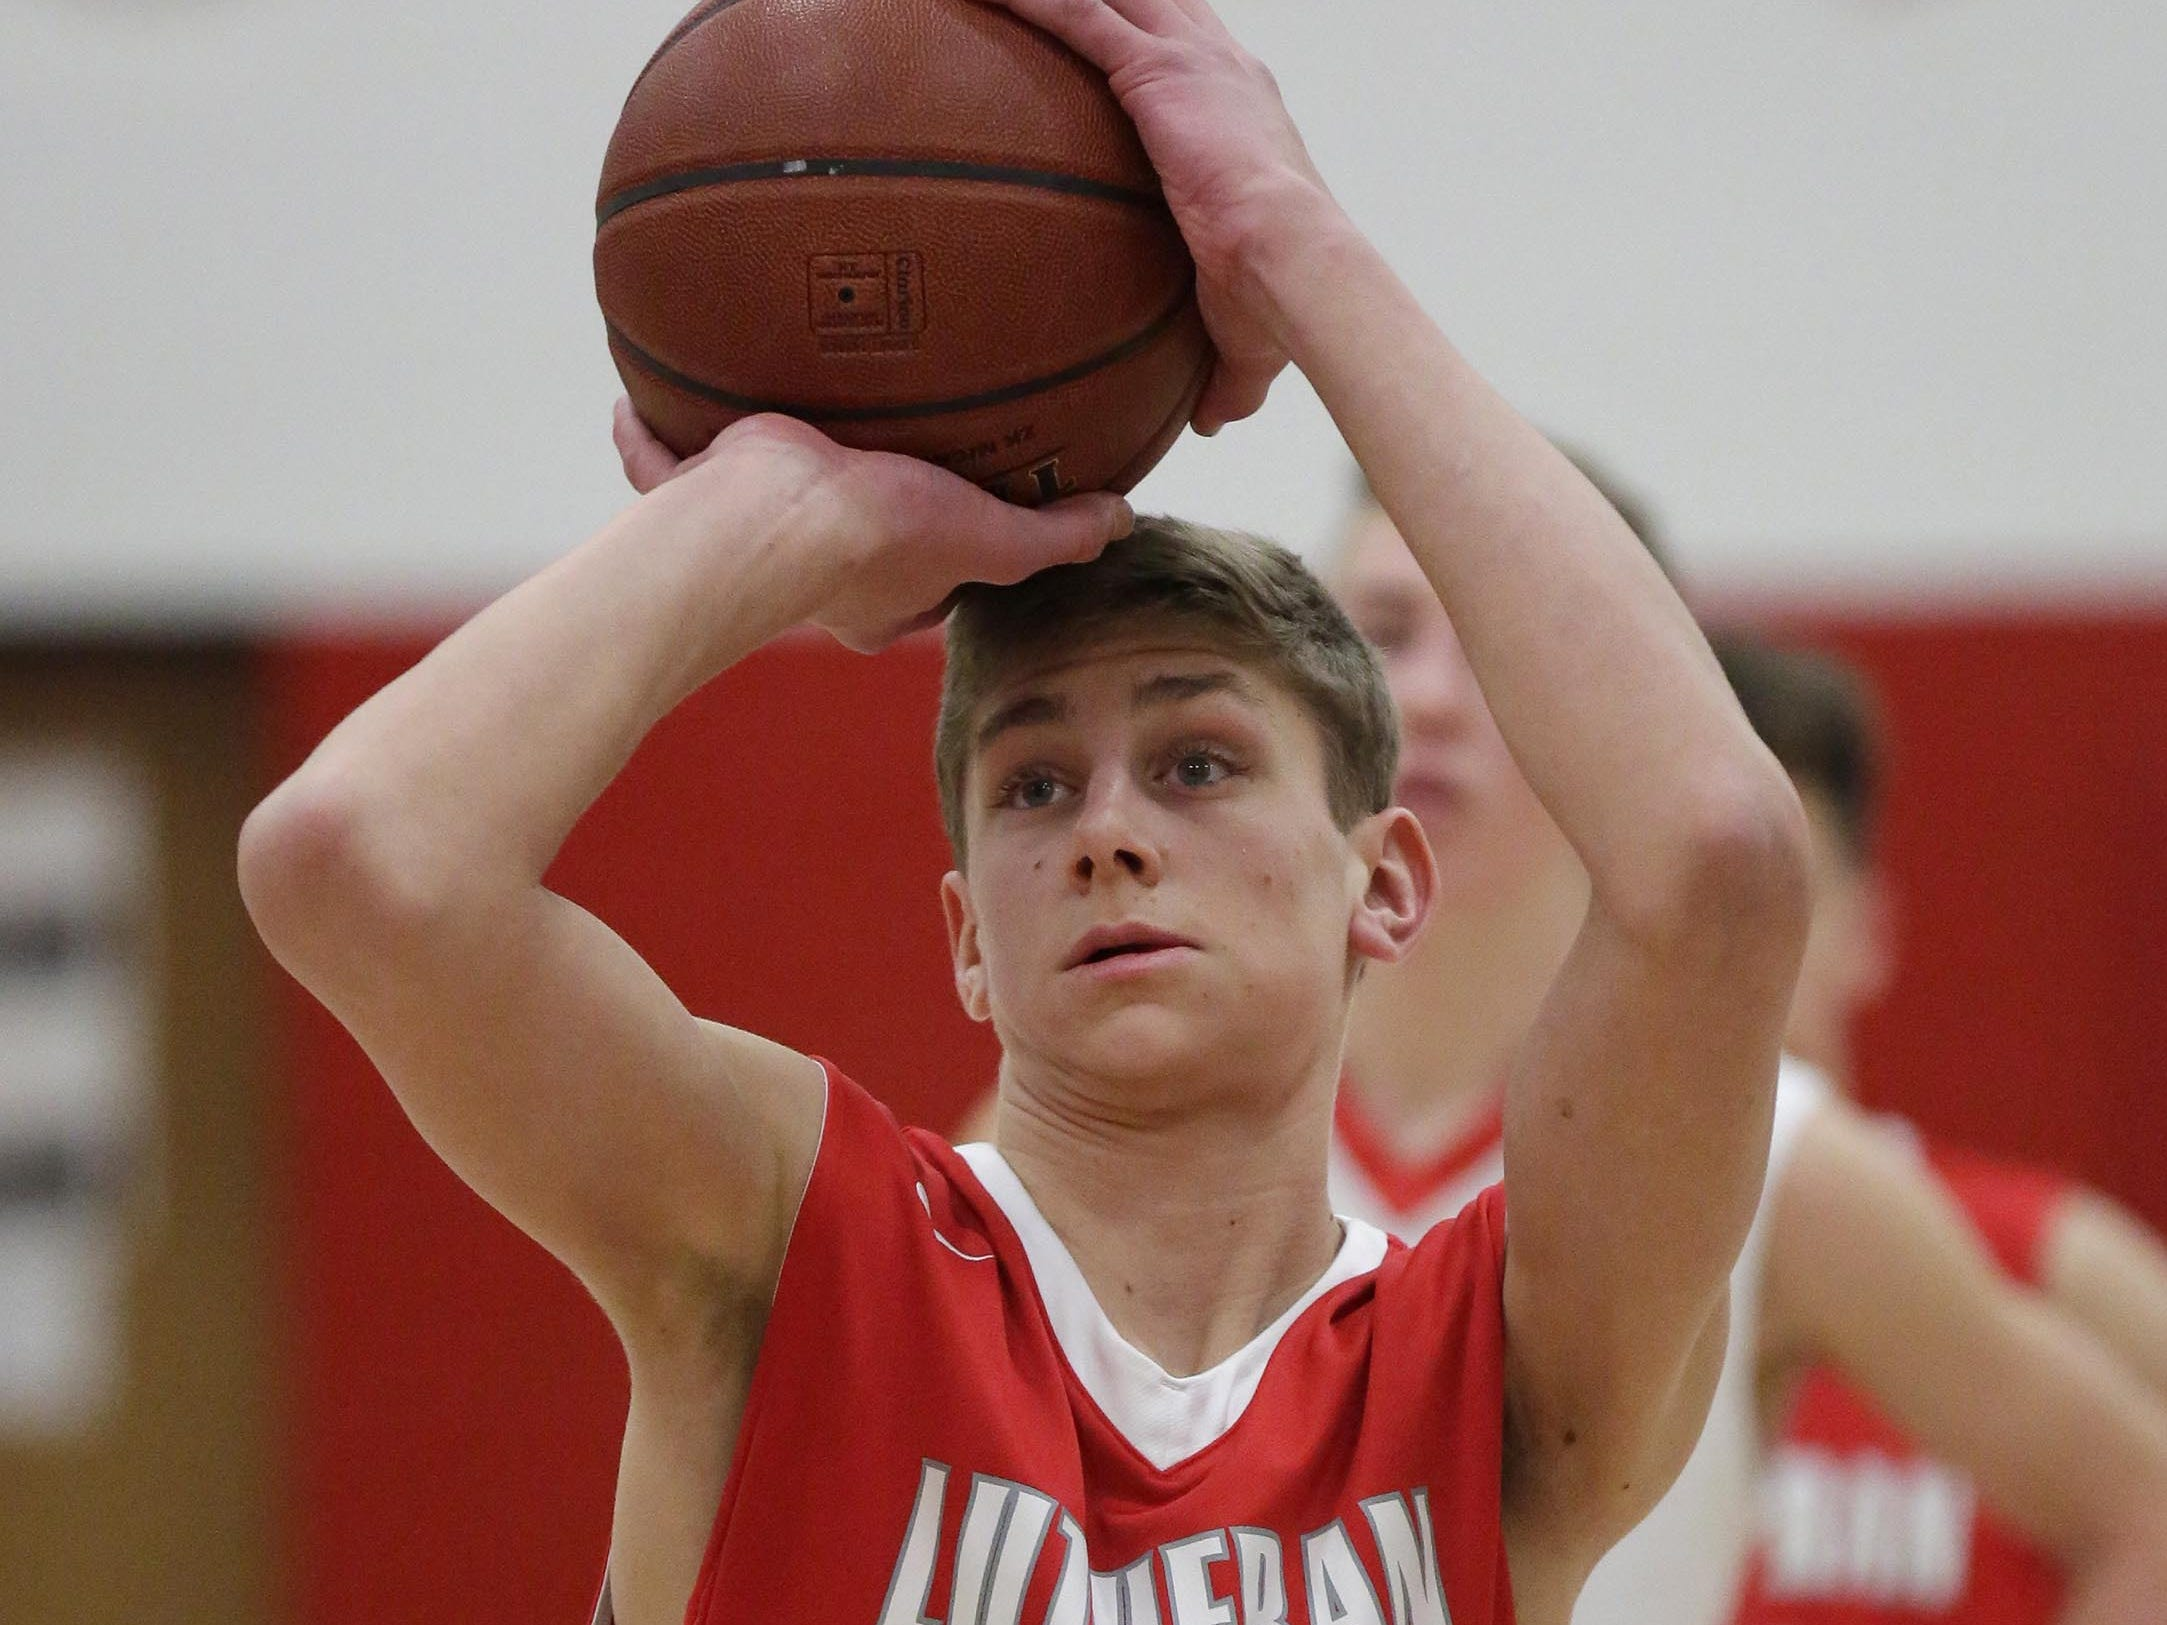 Manitowoc Lutheran's Nathaniel Luebke (44) aims a free throw against Oostburg, Friday, February 8, 2019, in Oostburg, Wis. Gary C. Klein/USA TODAY NETWORK-Wisconsin